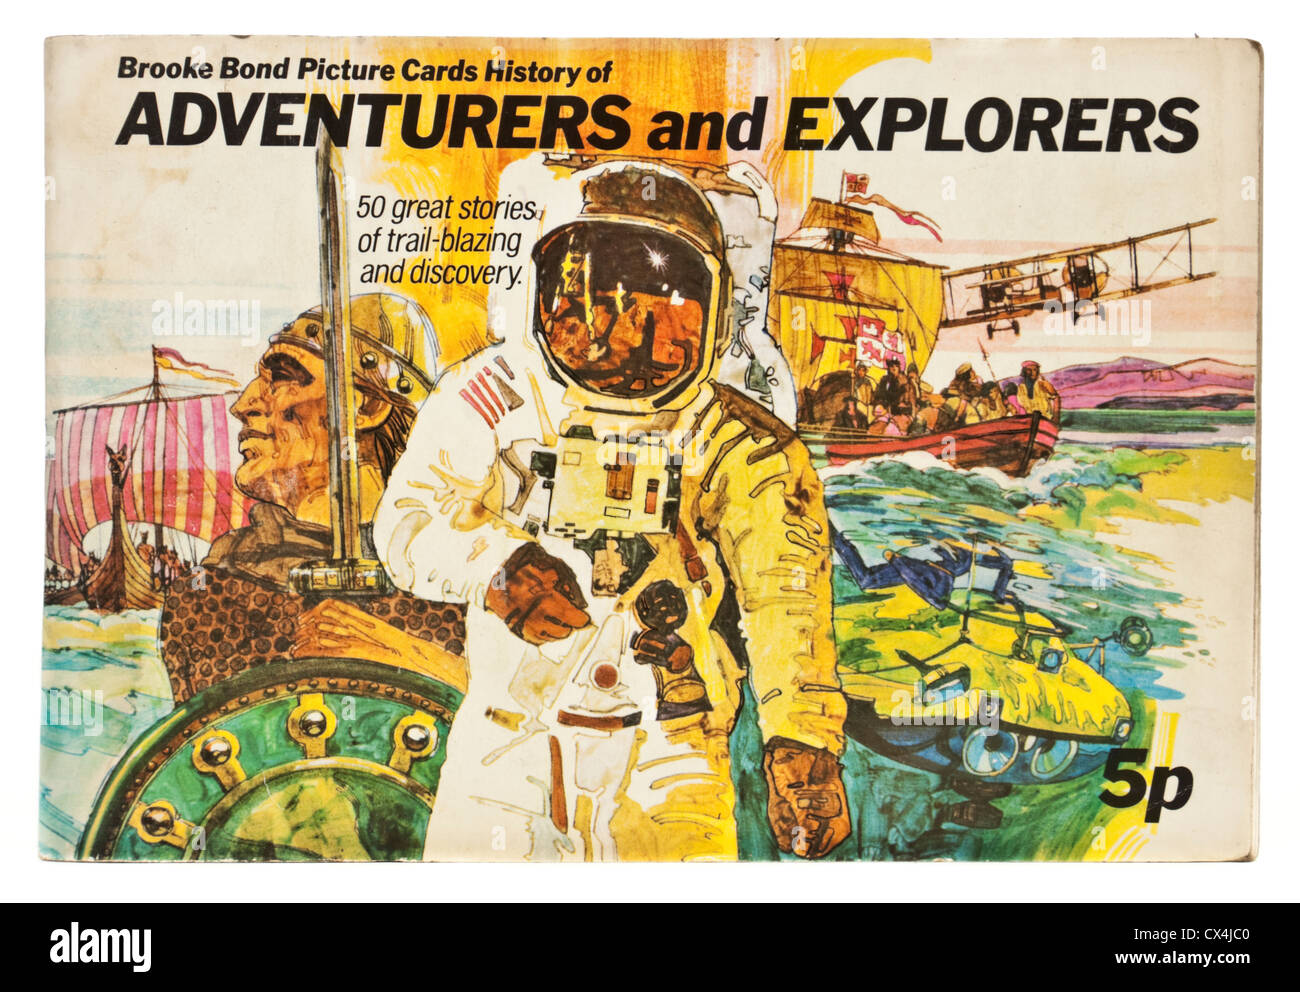 """Vintage """"History of Adventurers and Explorers"""" Brooke Bond Picture Cards album Stock Photo"""